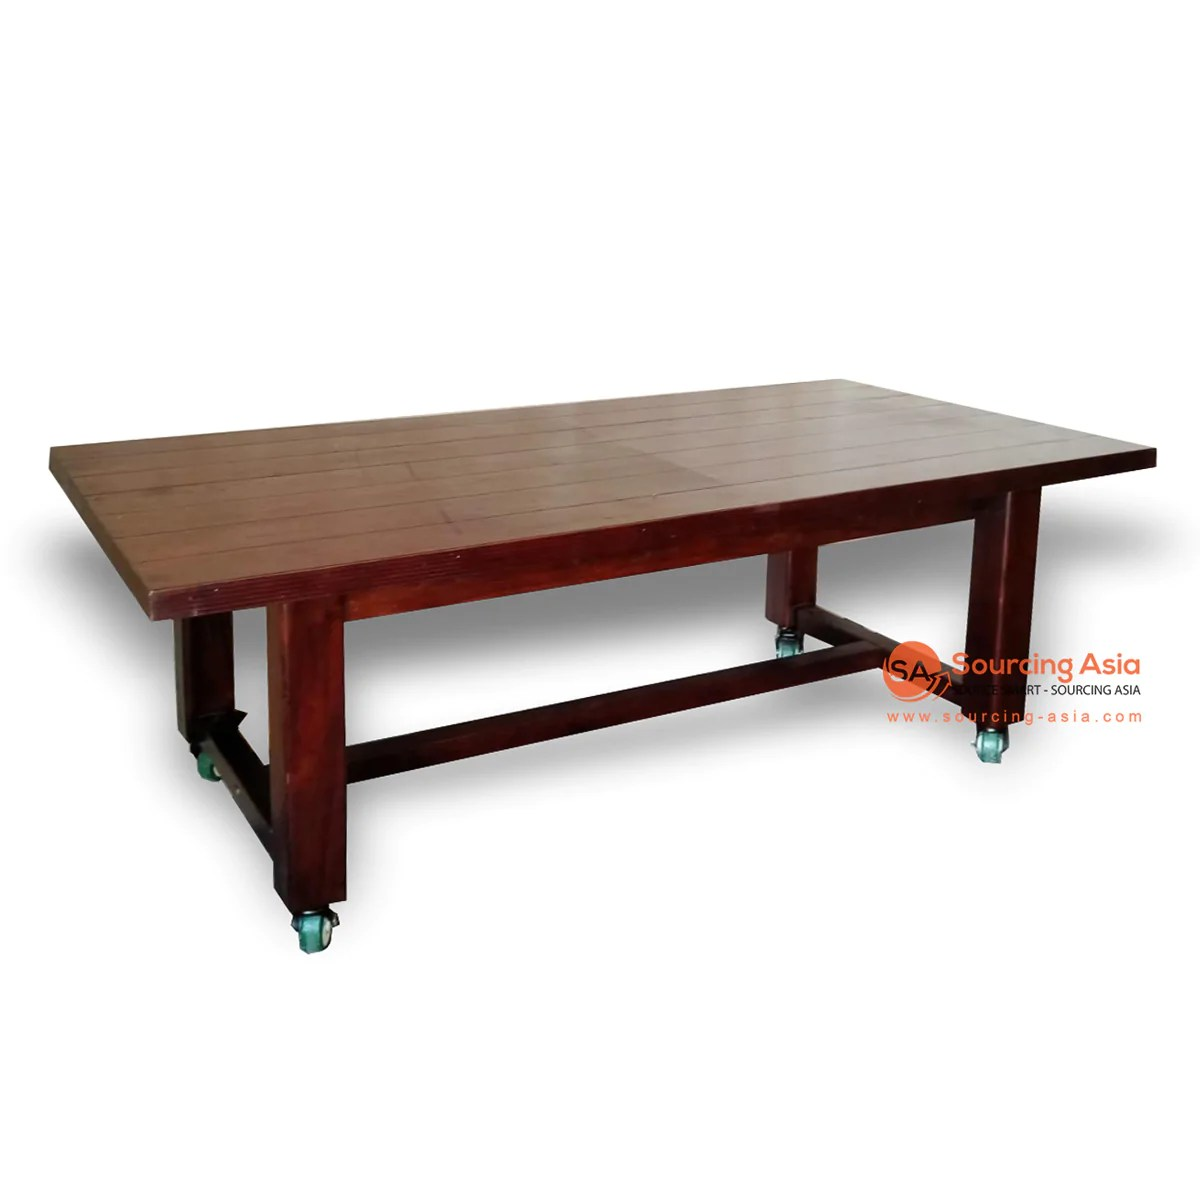 Ecl260 1 Knockdown Recycled Teak Wood Dining Table With Added Wheels Sourcing Asia